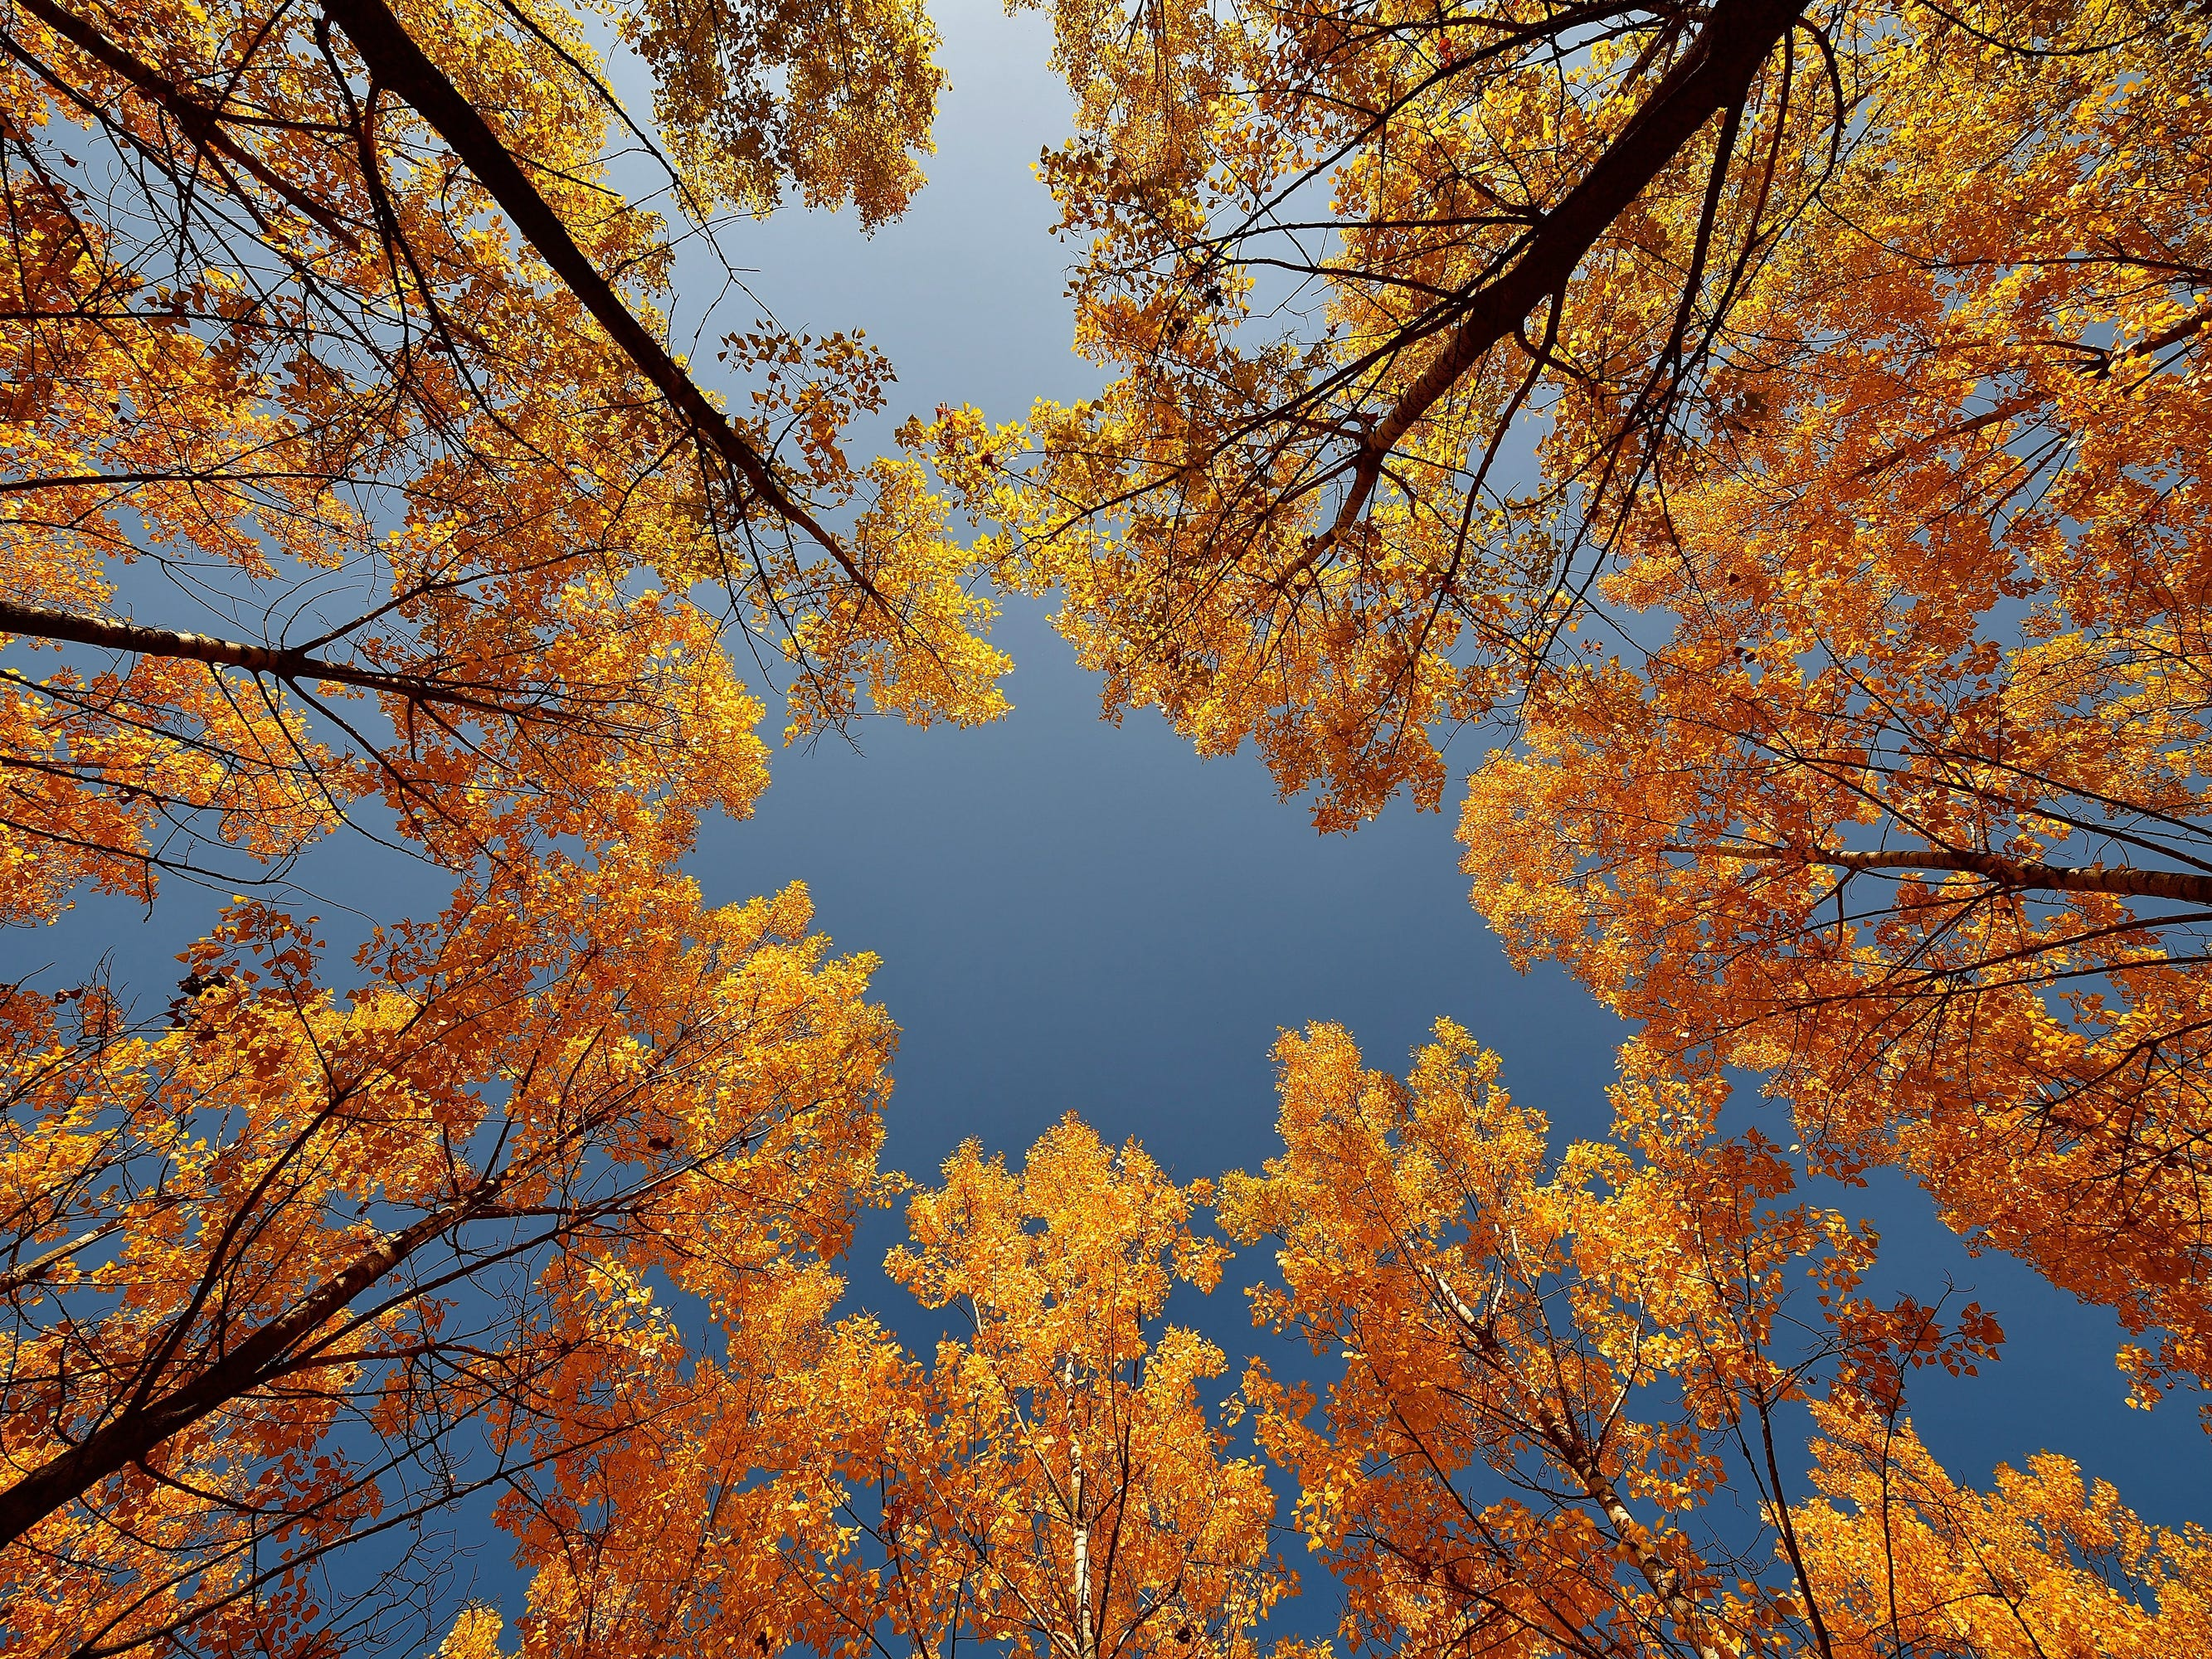 Trees in autumn leaf colors are pictured on a sunny day in a forest in Nyiregyhaza, Hungary, Oct. 9, 2018.